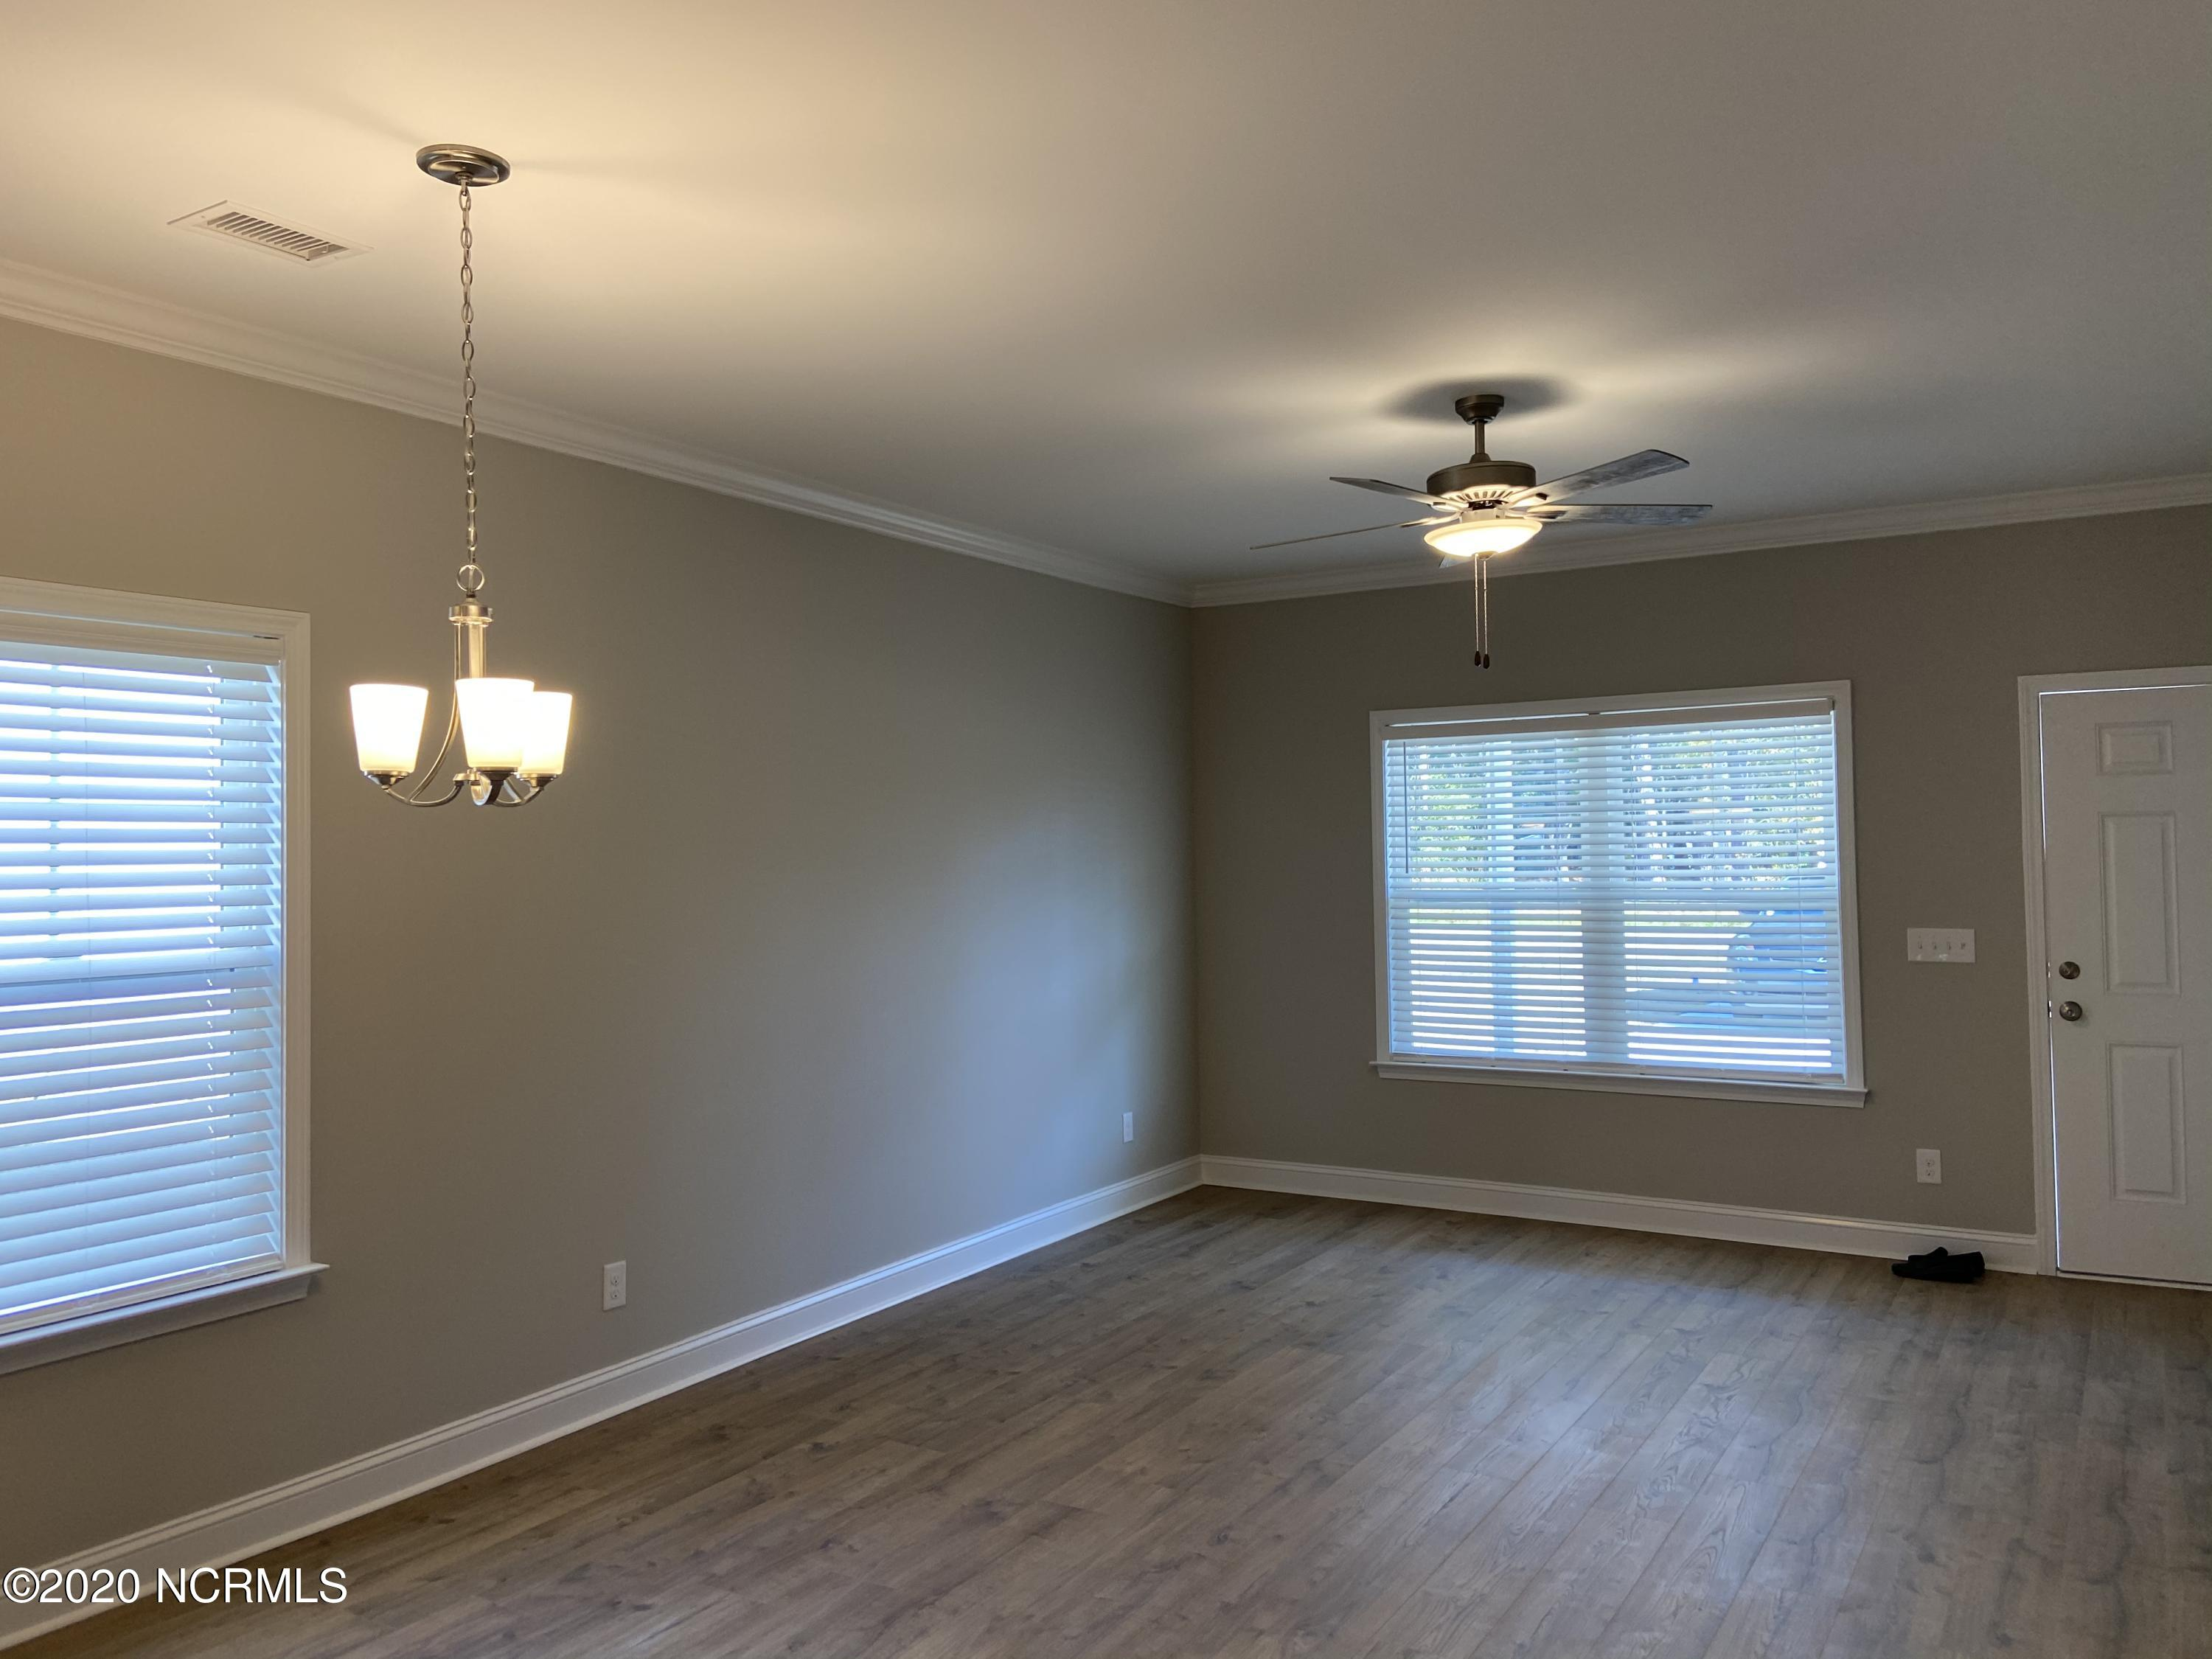 1012 High Point Avenue, Calabash, North Carolina 28467, 2 Bedrooms Bedrooms, 8 Rooms Rooms,2 BathroomsBathrooms,Single family residence,For sale,High Point,100227158